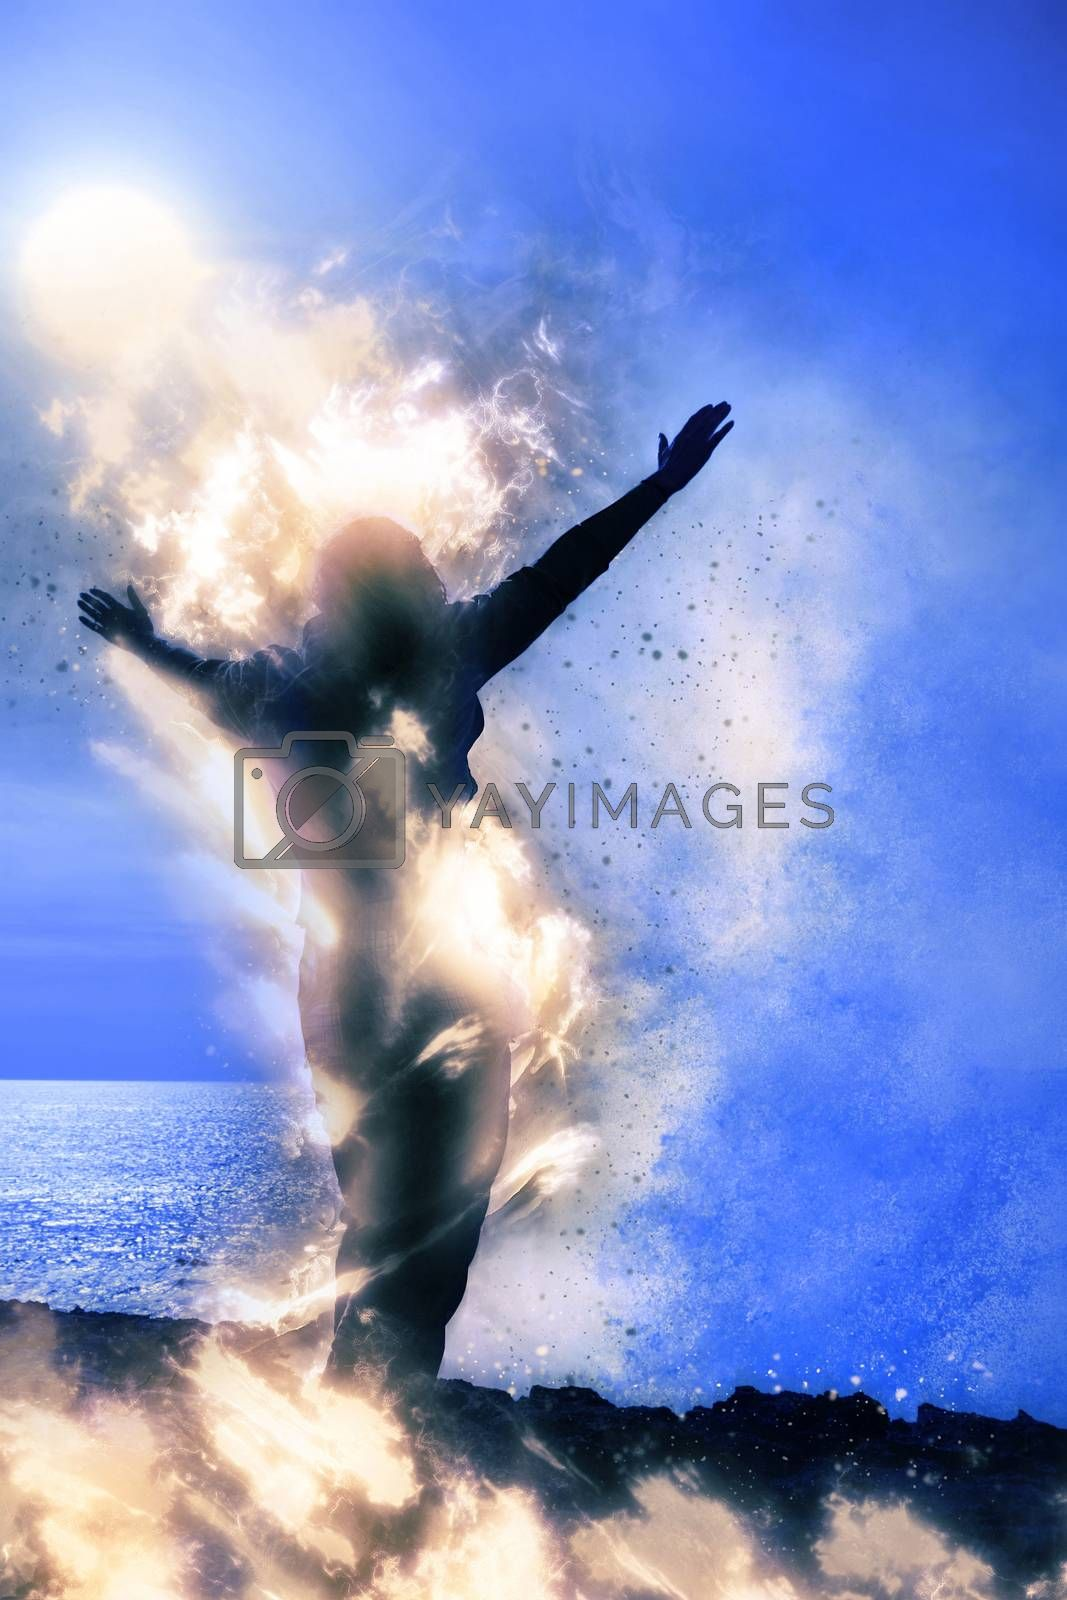 a lone woman raising her arms spiritually on fire facing a powerful wave on the cliffs edge